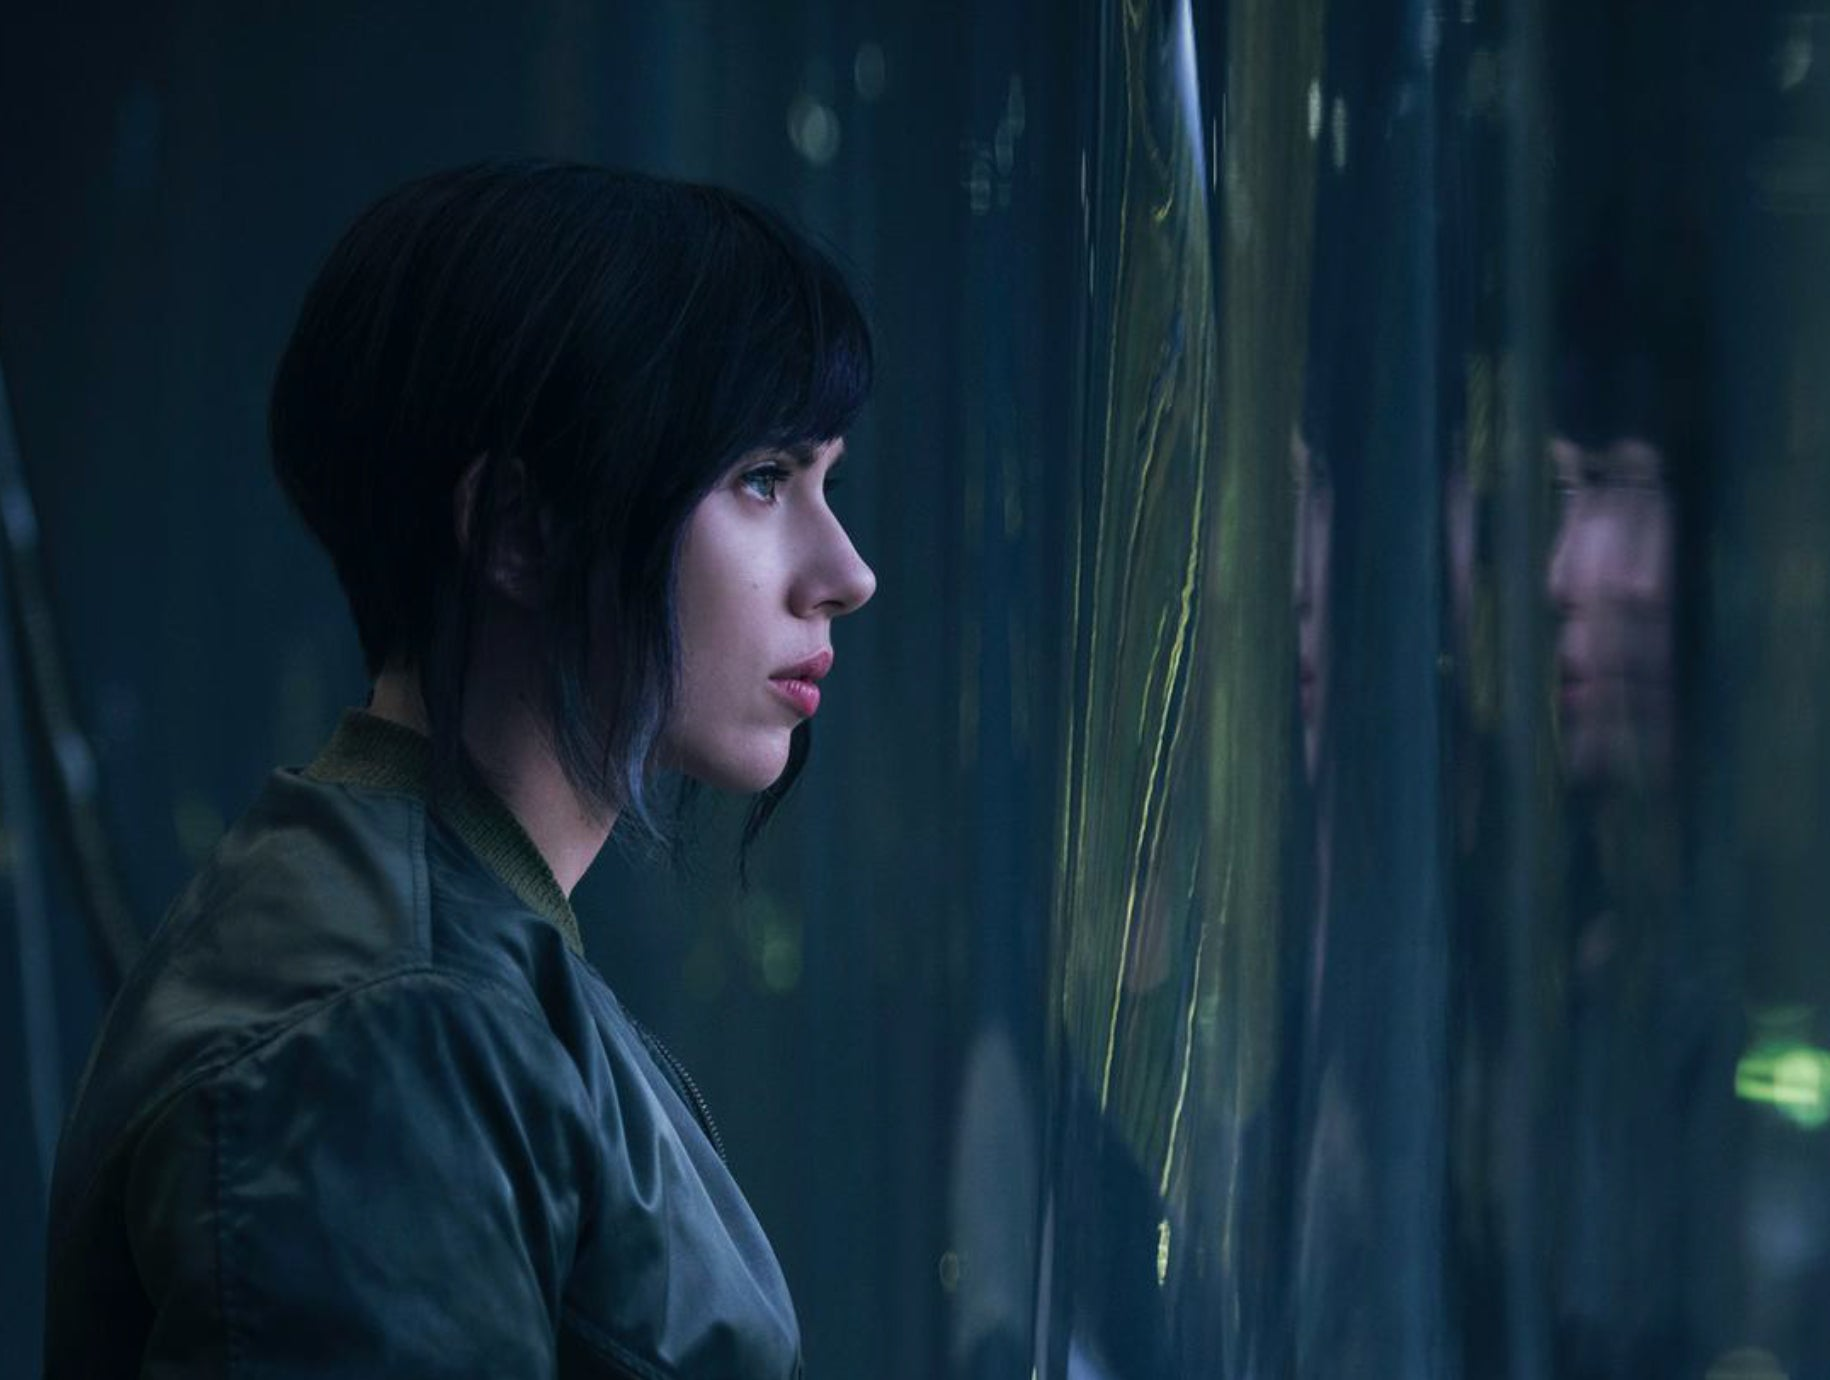 First Look: 'Ghost in the Shell' With Scarlett Johansson